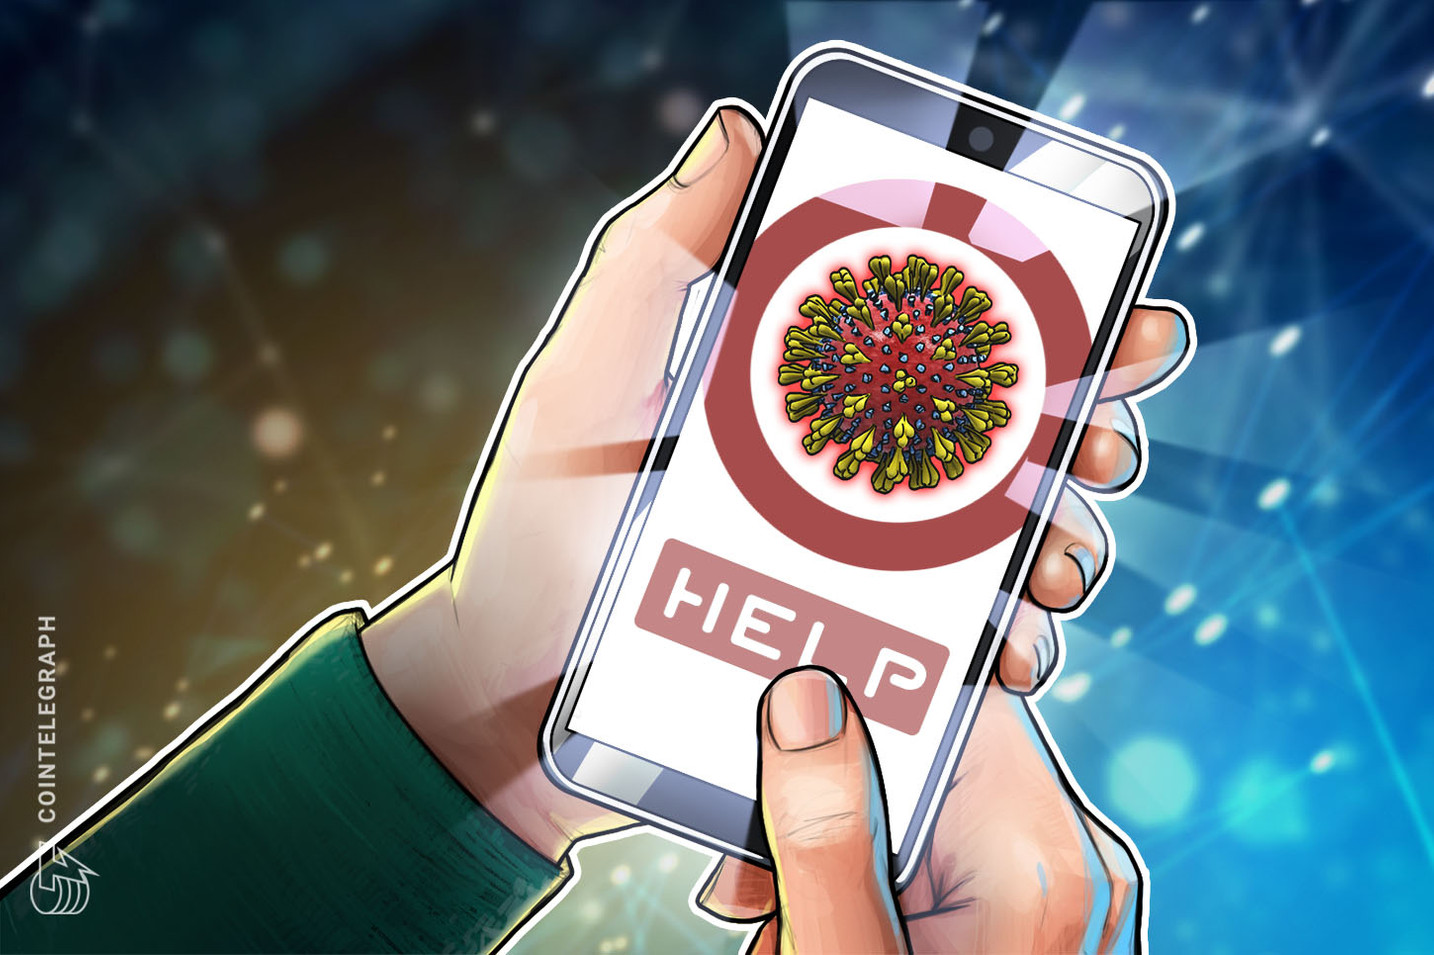 Surge in Crypto Emergency App Downloads Due to COVID-19